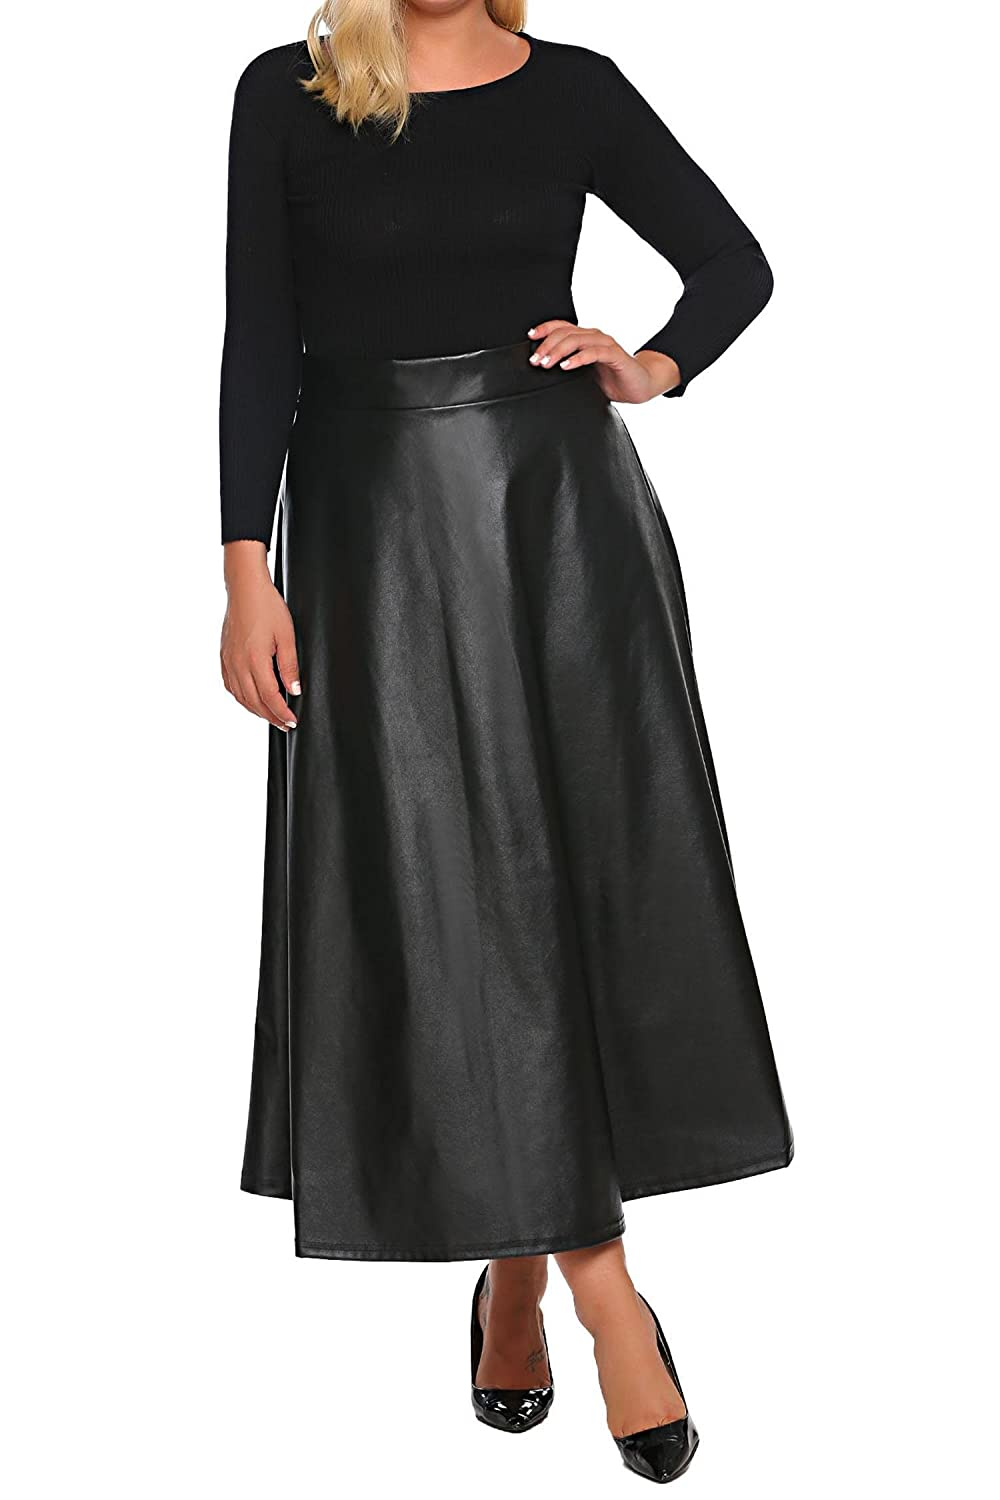 0cab7747c52f6 Top 10 wholesale Plus Size Skirts Elastic Waist - Chinabrands.com